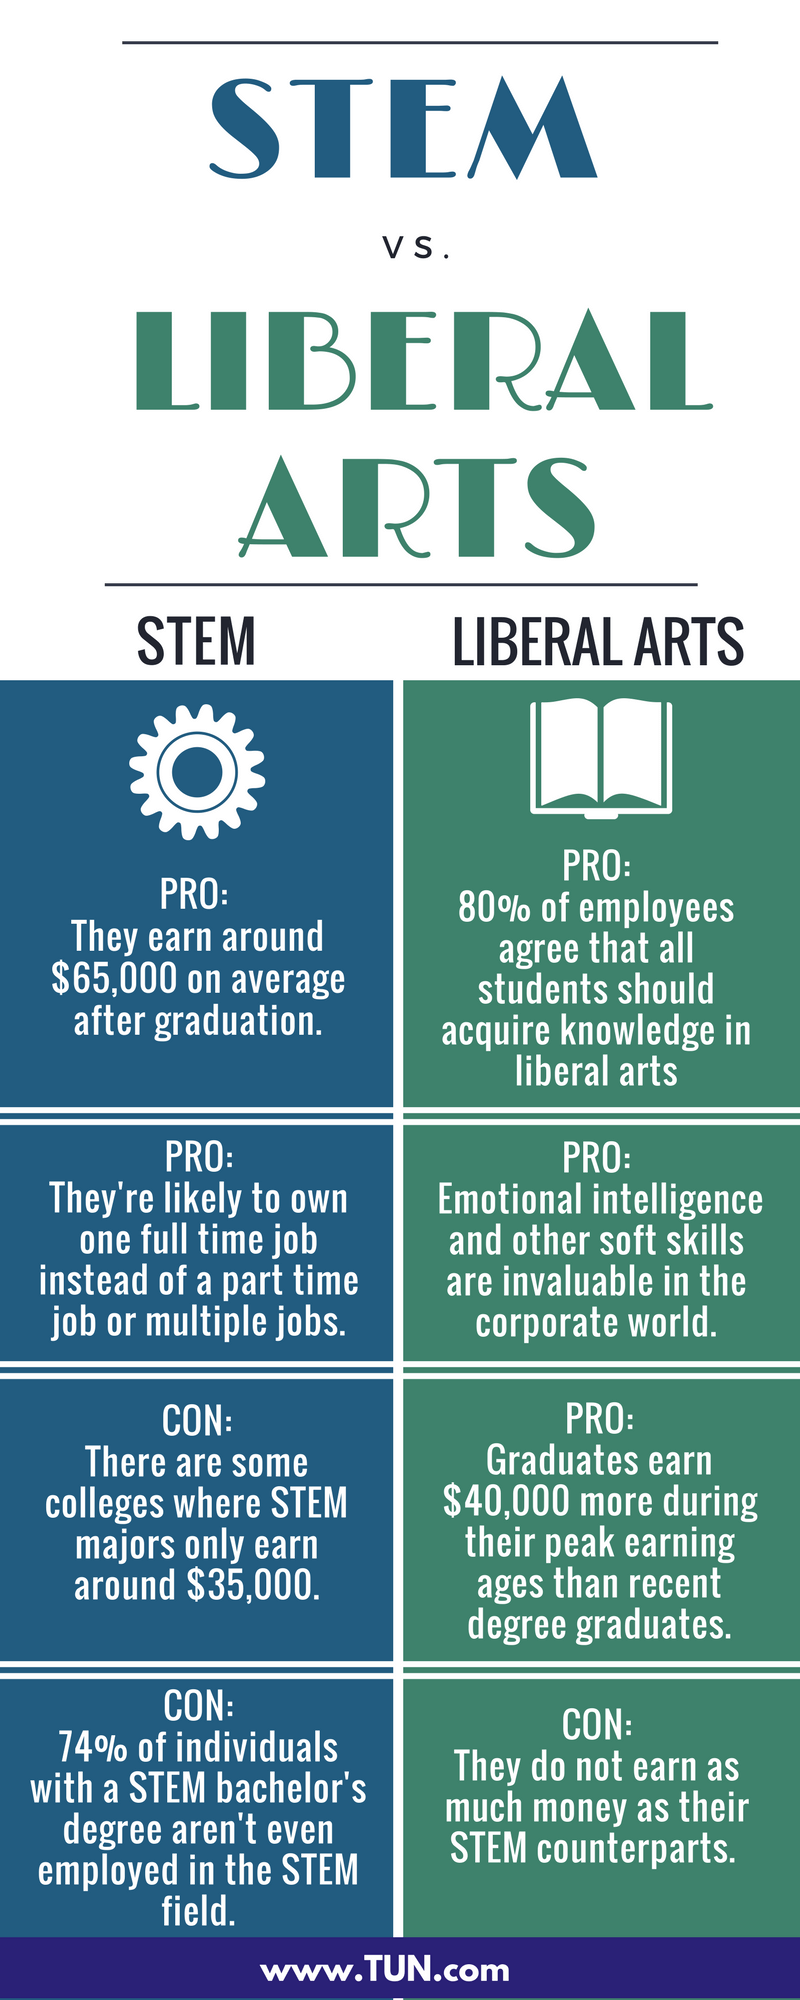 STEM and Liberal Arts the Pros and Cons of Both Degrees